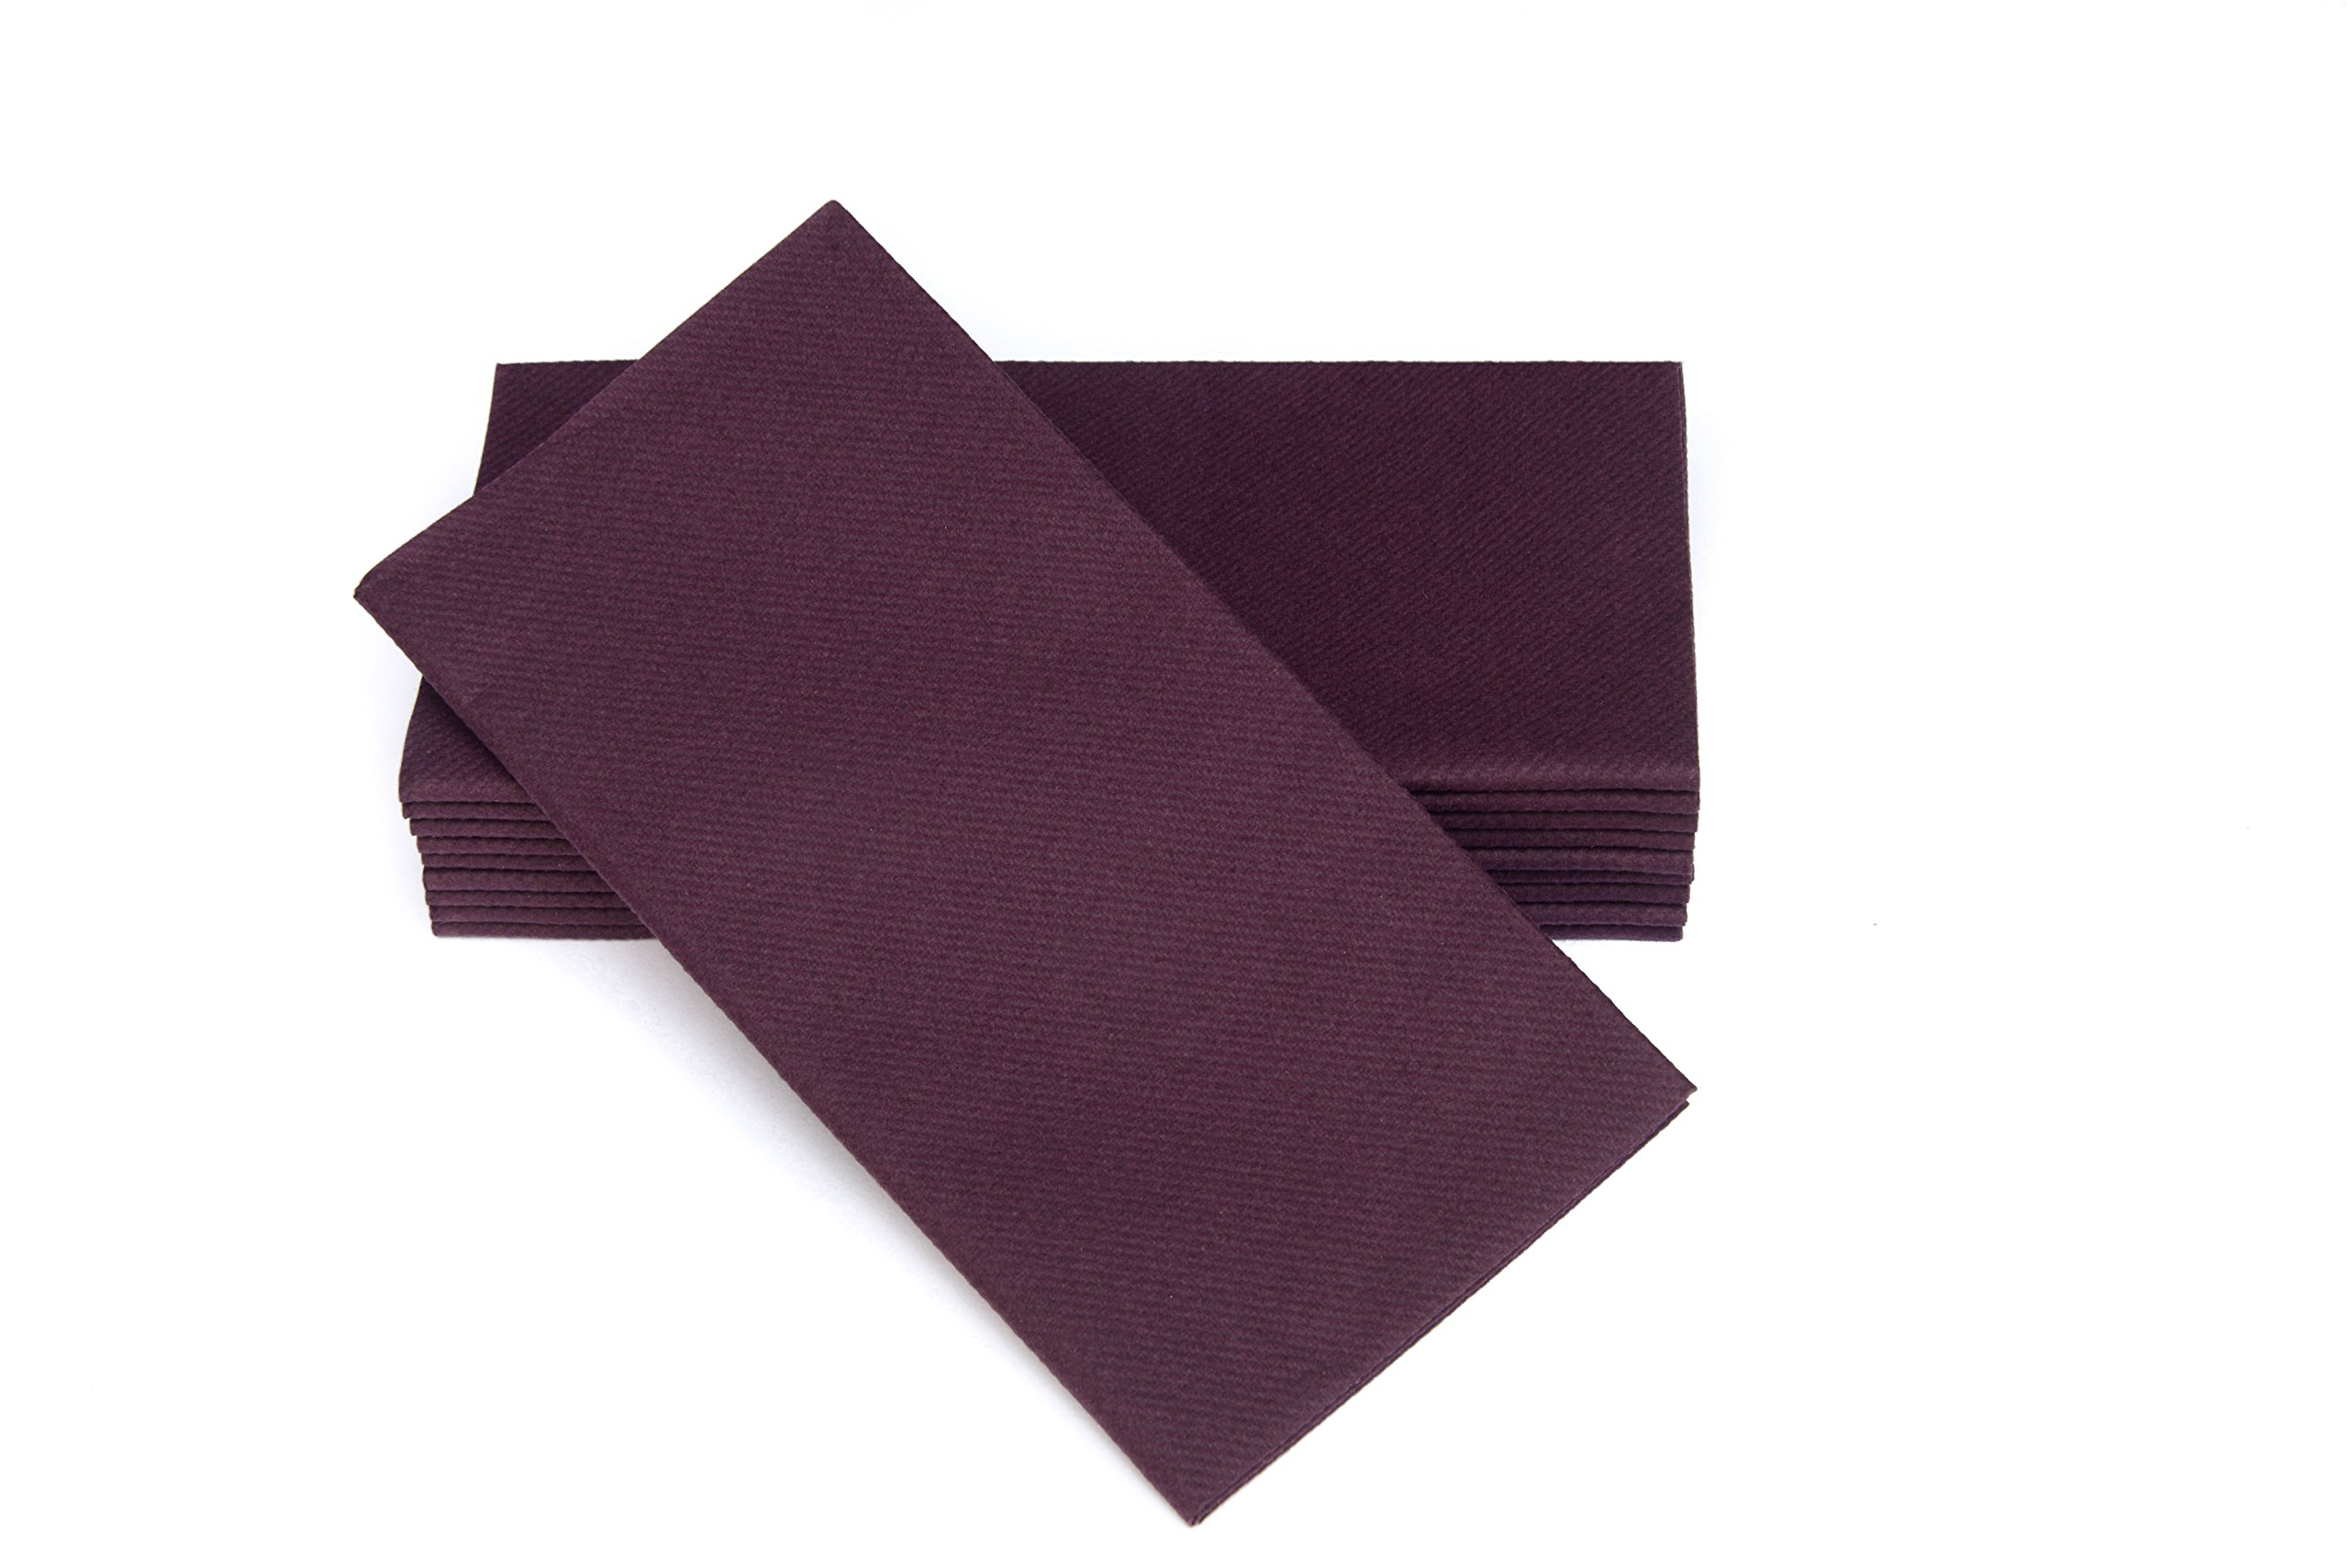 """Simulinen Colored Napkins - Decorative Cloth Like & Disposable, Dinner Napkins - Plum - Soft, Absorbent & Durable - 16""""x16"""" - Great for Any Occasion! - Box of 50"""